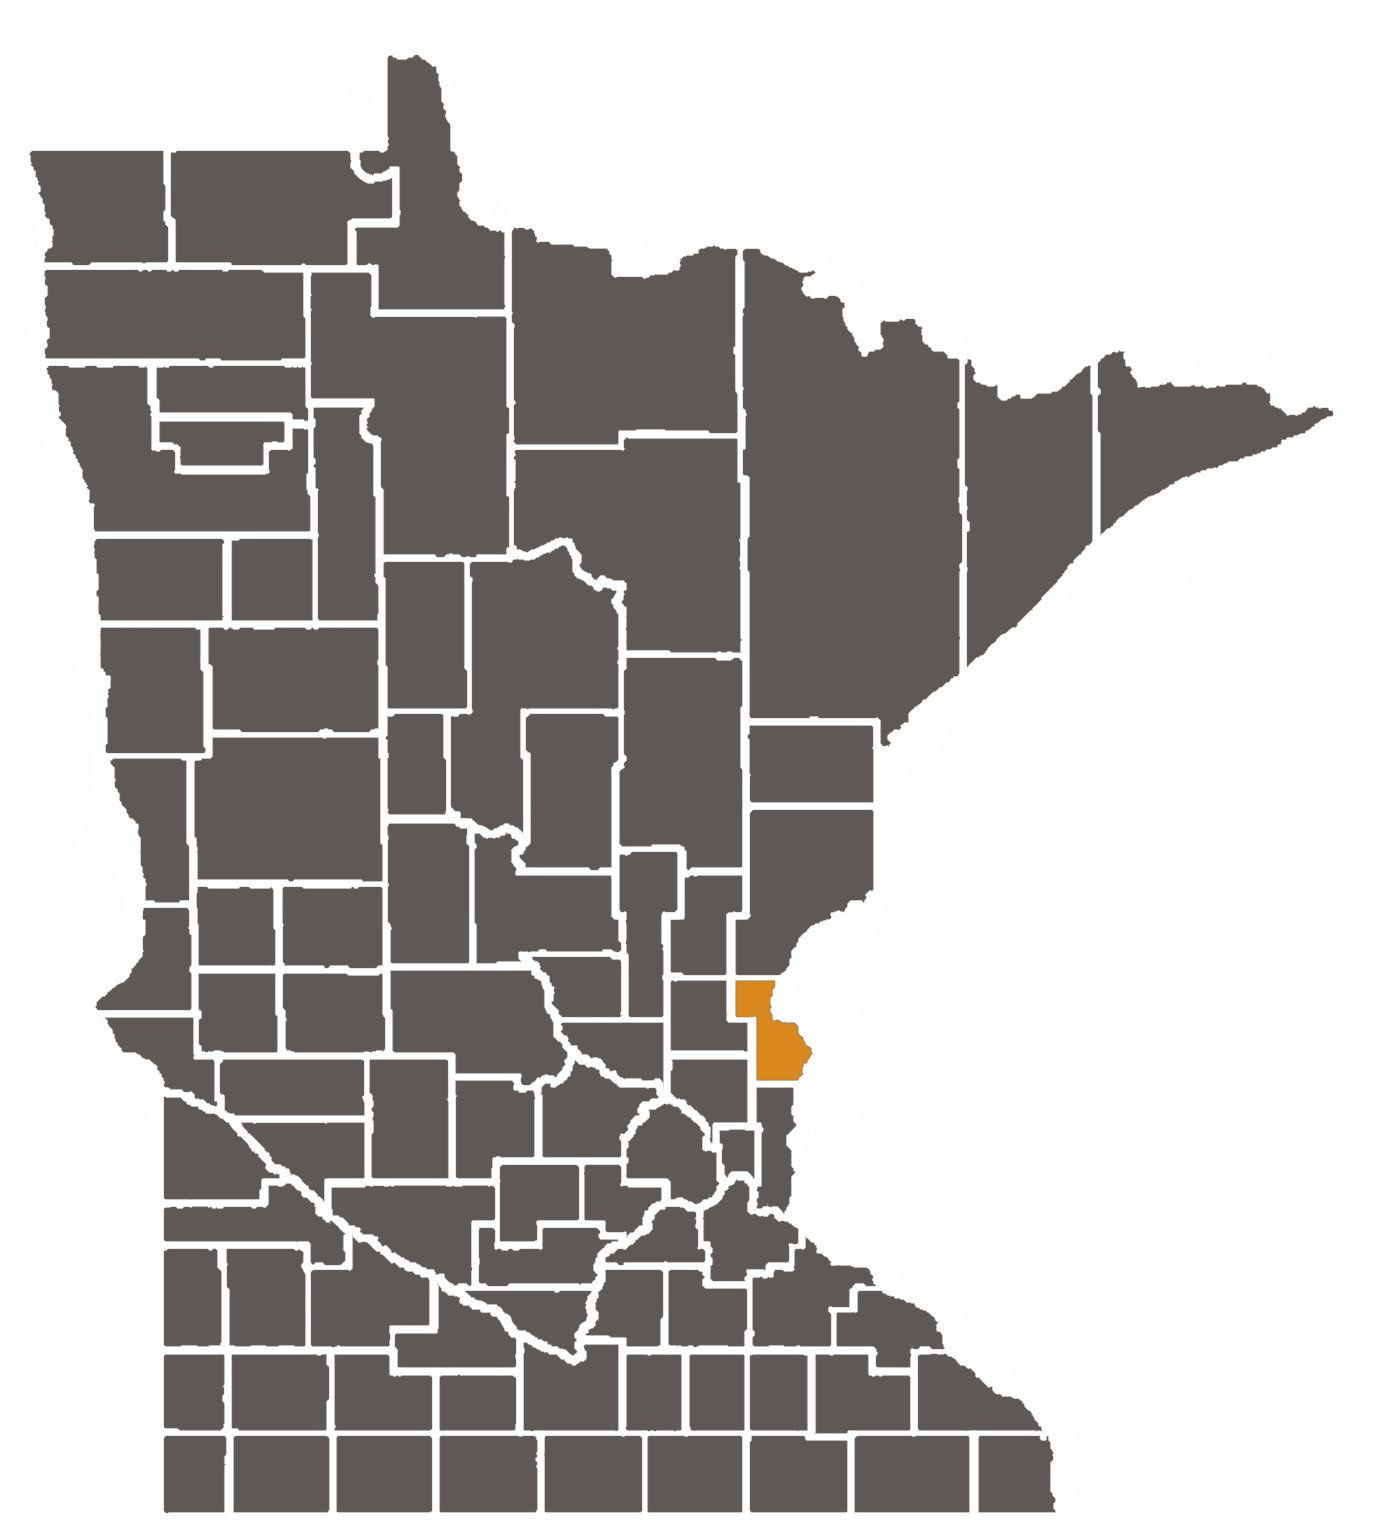 Minnesota map with Chisago County highlighted.